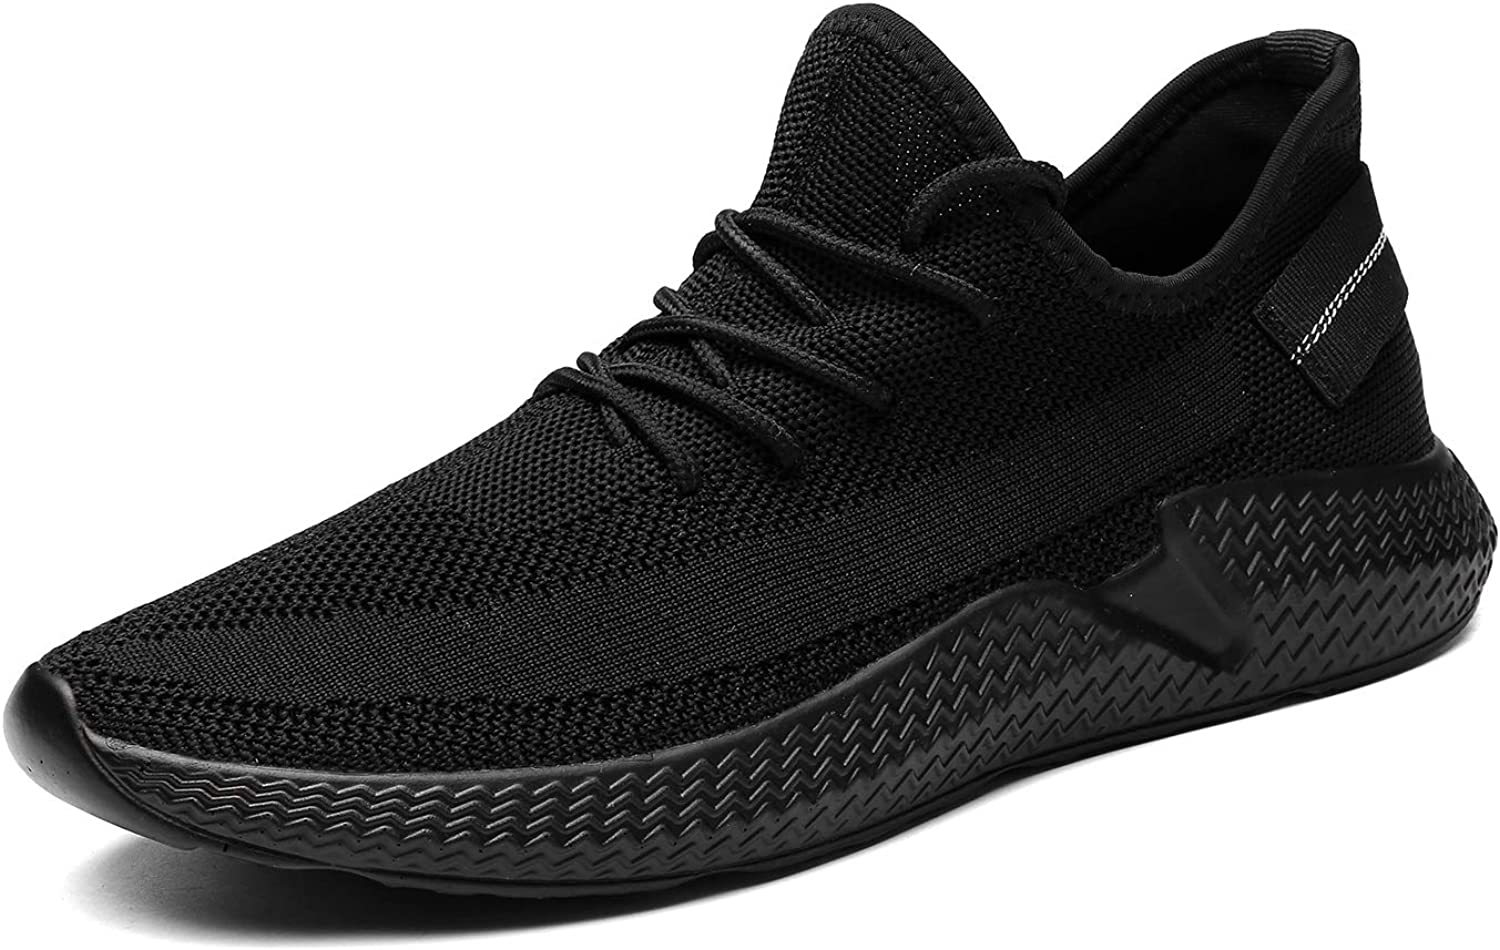 Kvovzo Mens Walking Athletic Shoes Comfort Casual Sneaker Trail Running Shoe for Men Tennis Baseball Racquetball Cycling